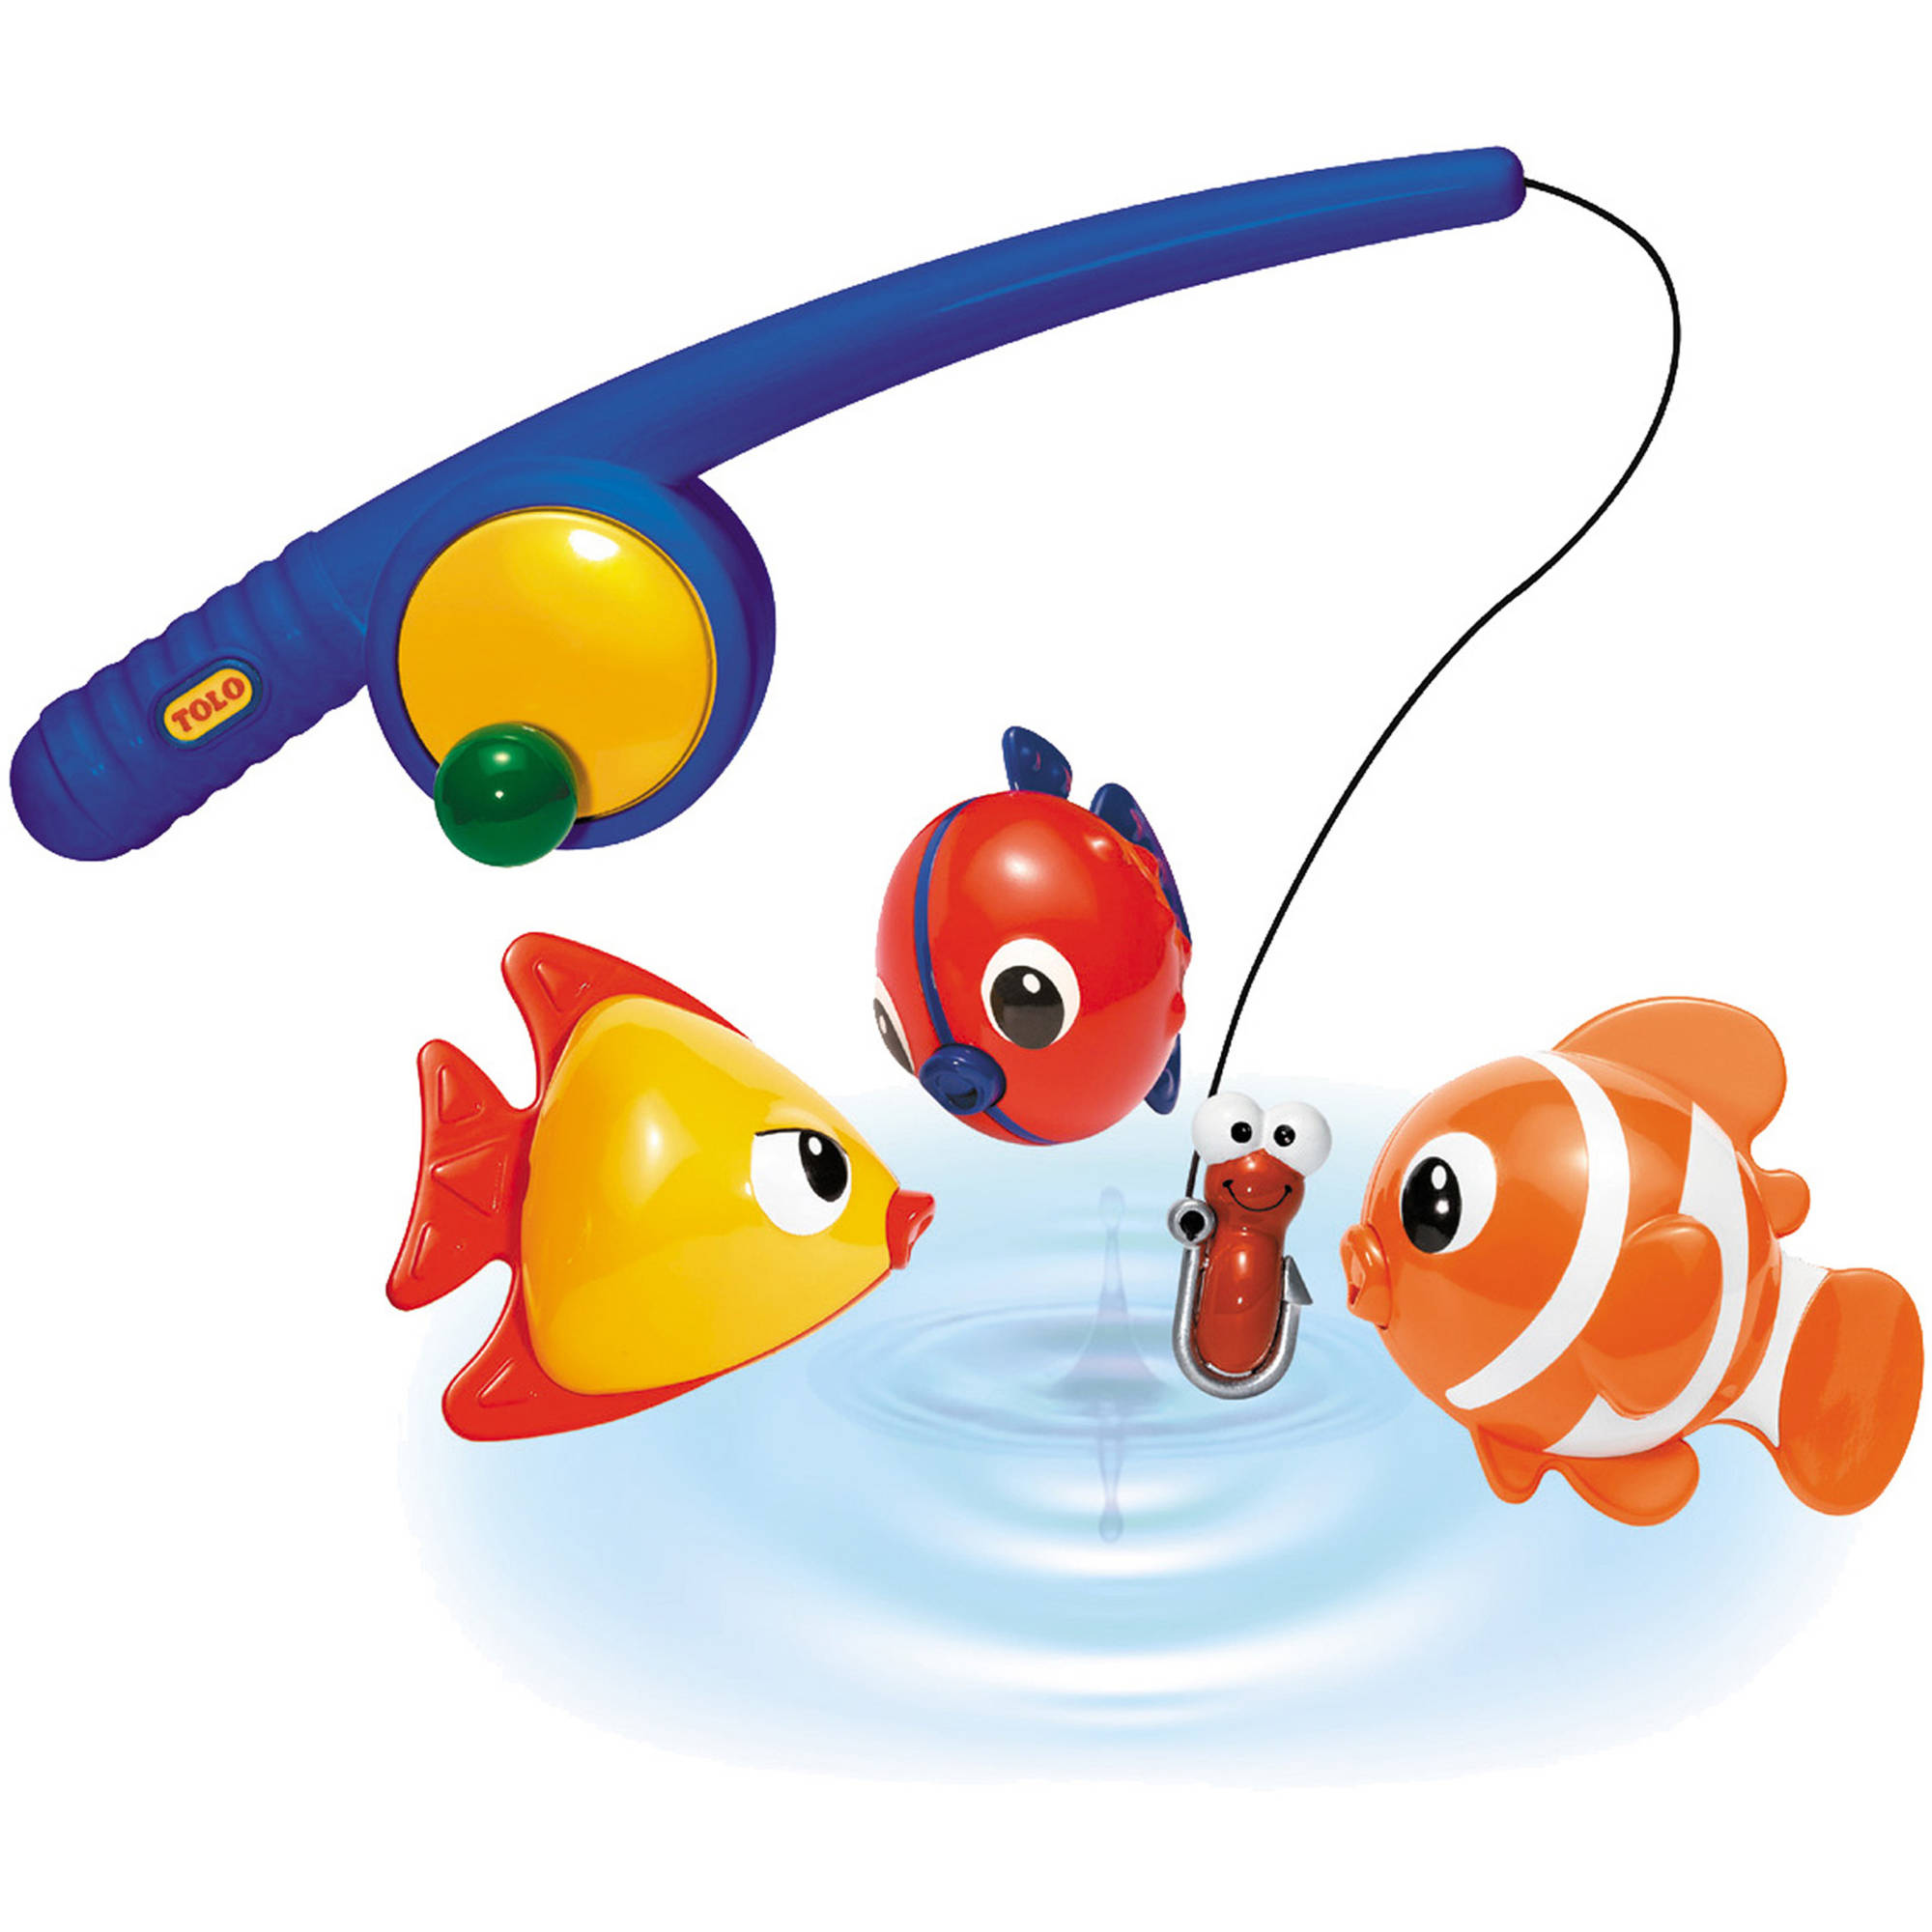 Tolo Funtime Fishing Bath Toy by Tolo